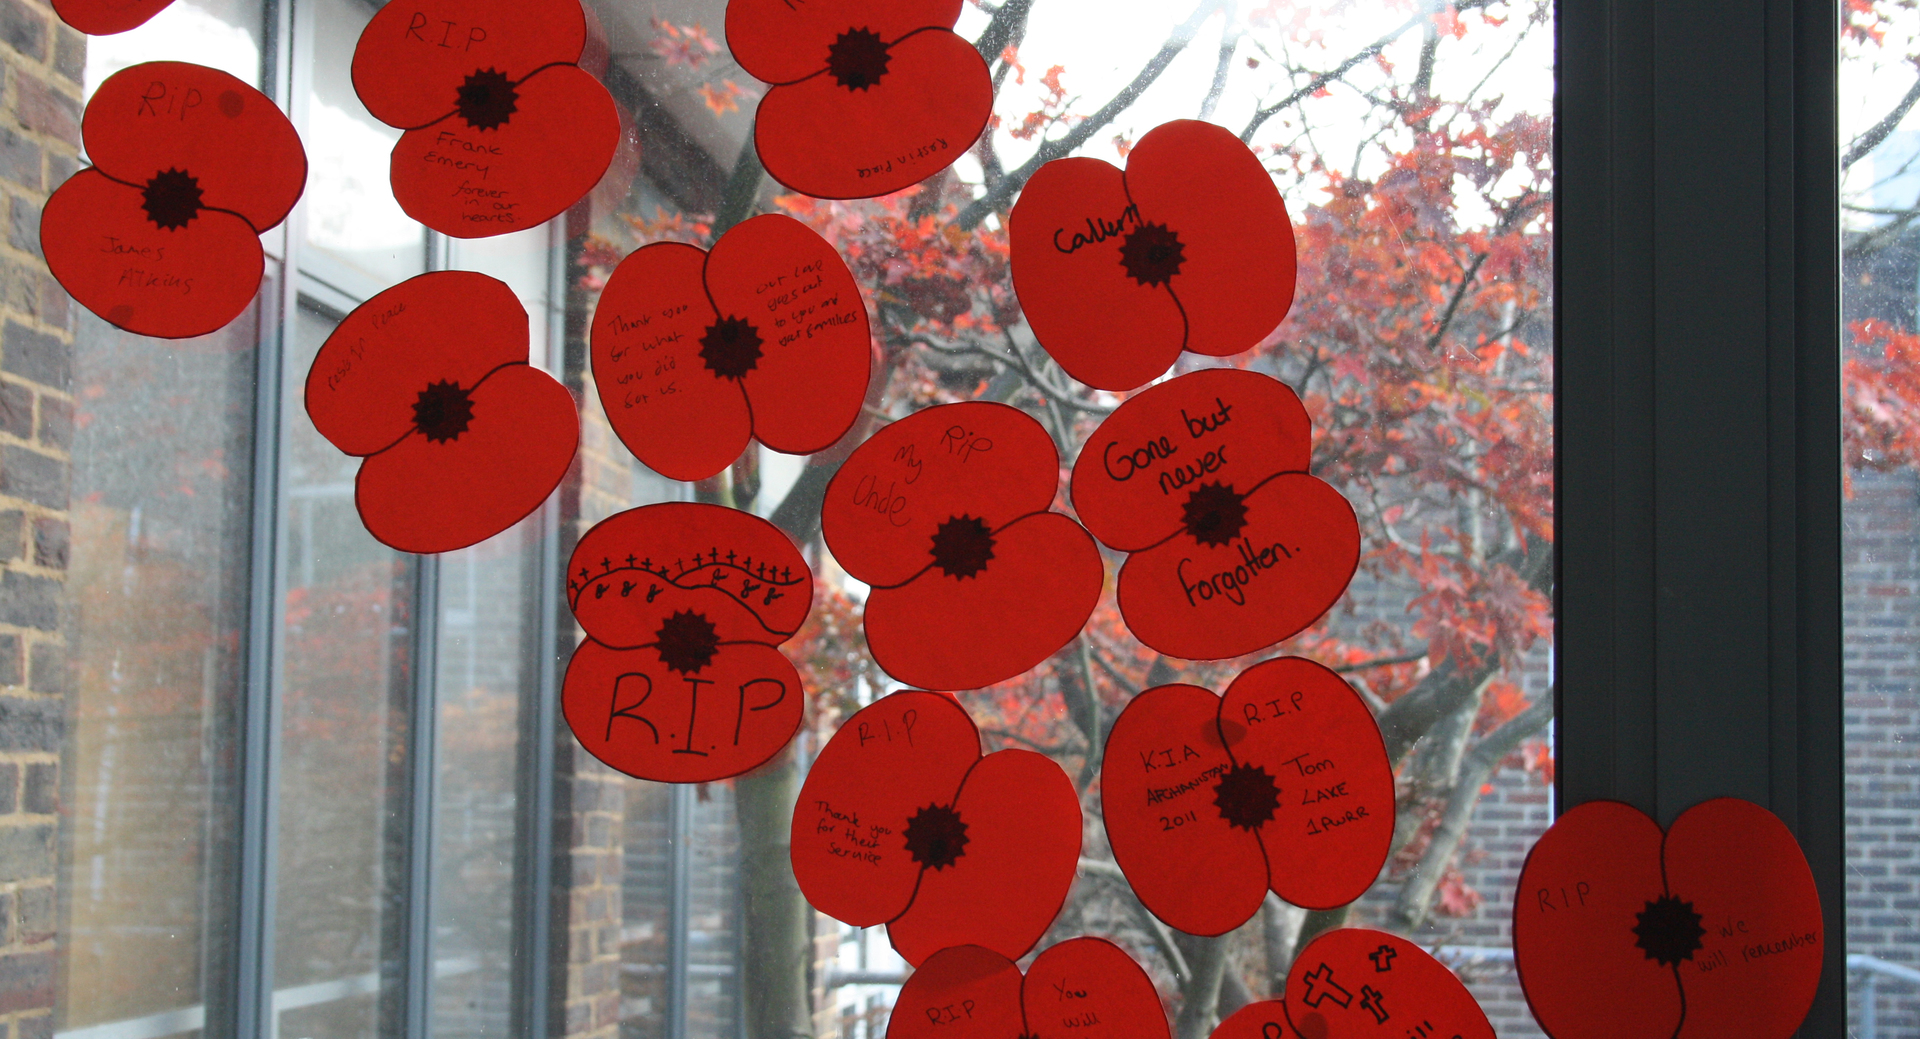 Staff and students write heart-felt messages to mark Remembrance Day